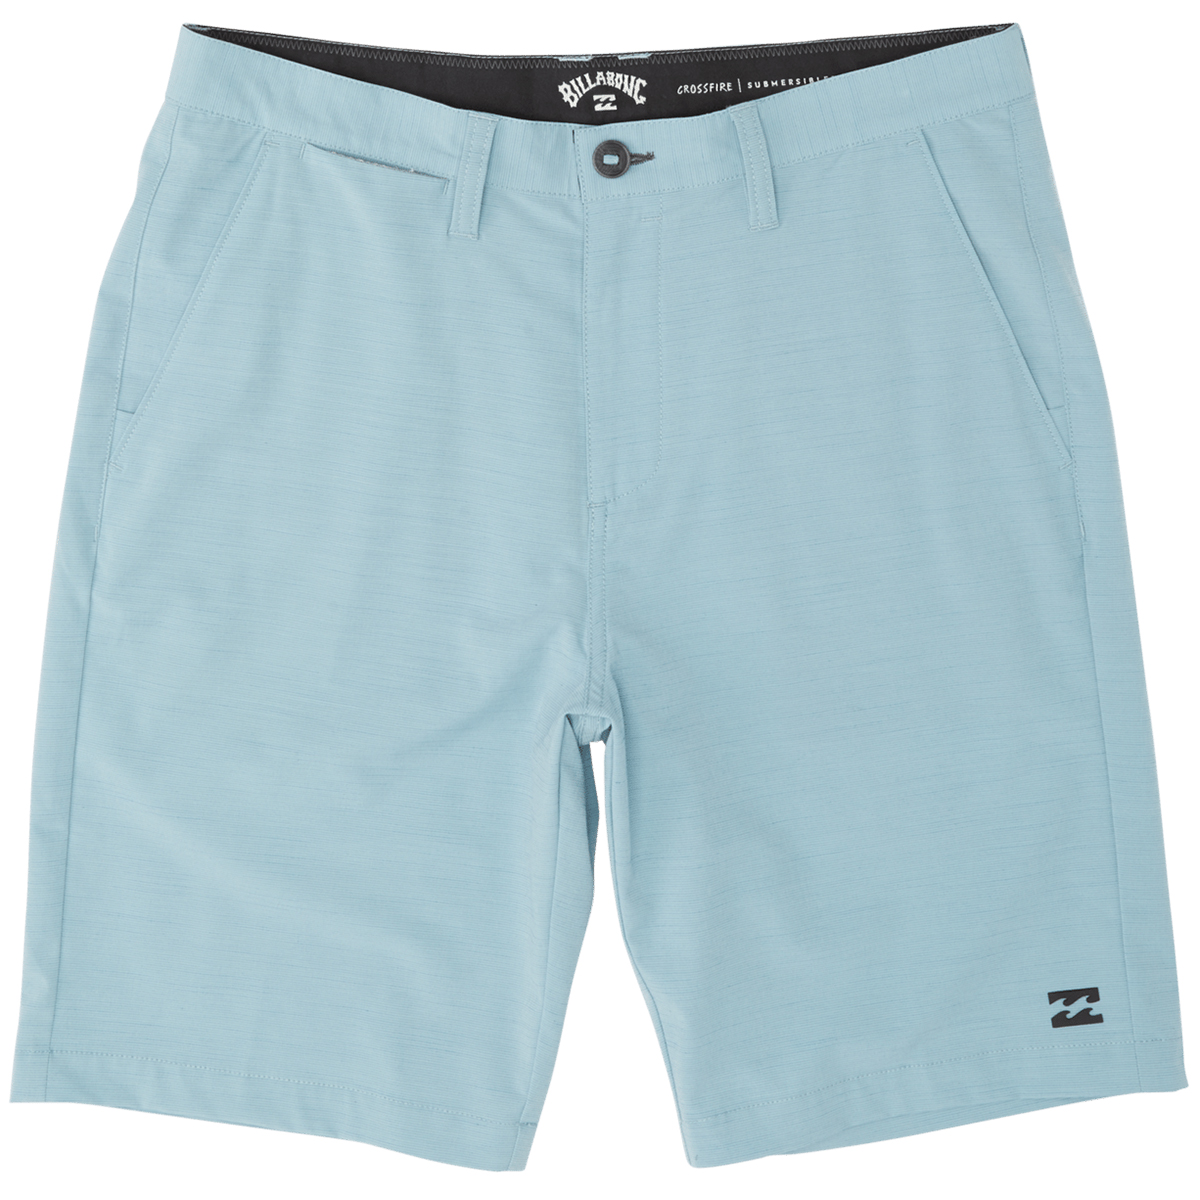 Billabong Men's Crossfire Slub Shorts - Blue, 36